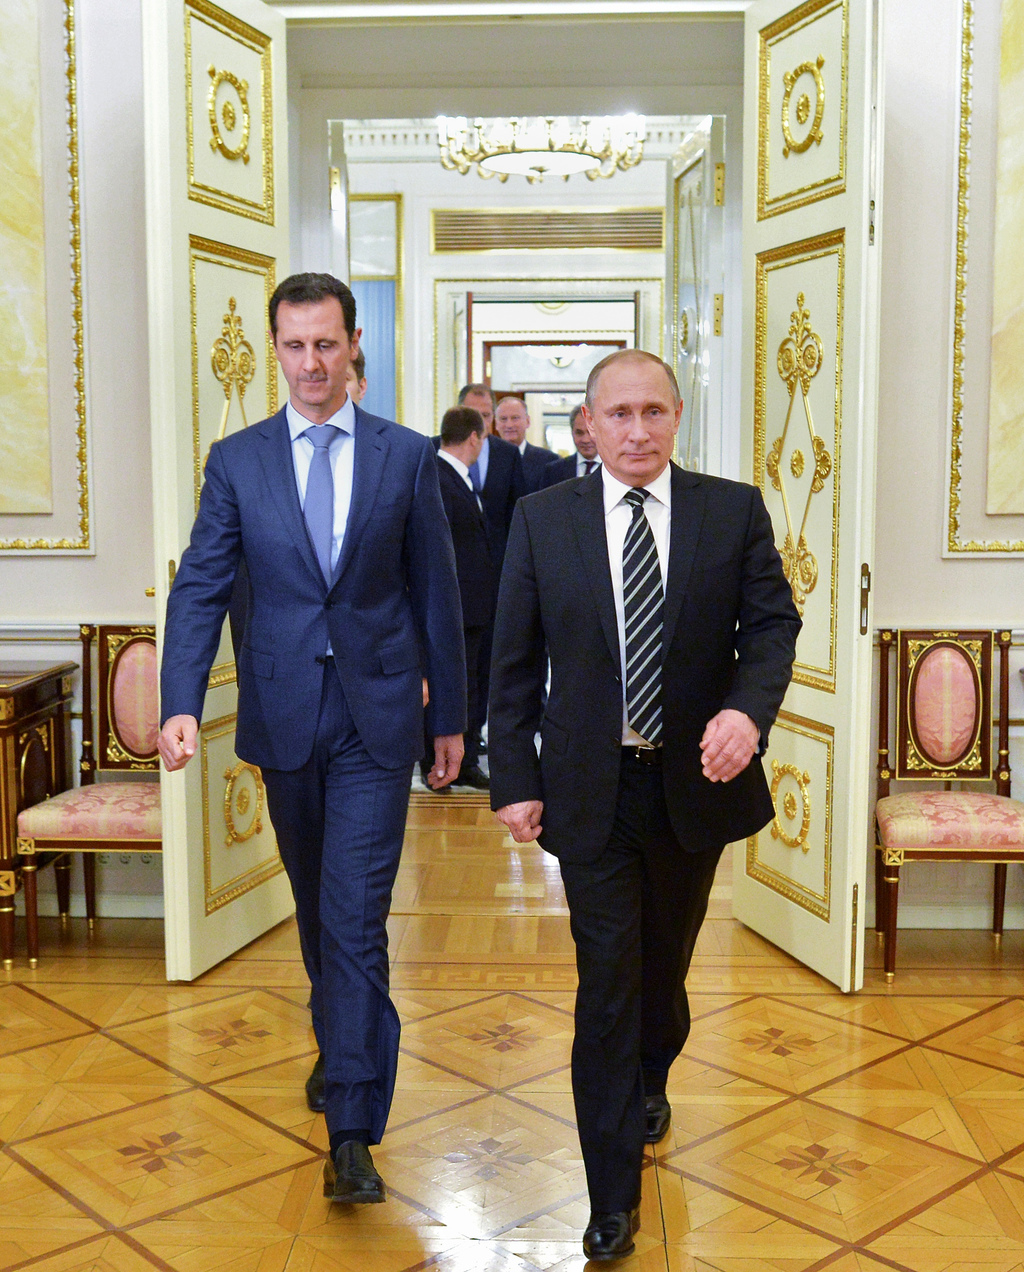 FILE -- In this Oct. 20, 2015 file photo, Russian President Vladimir Putin, right, and Syria President Bashar Assad arrive for their me...